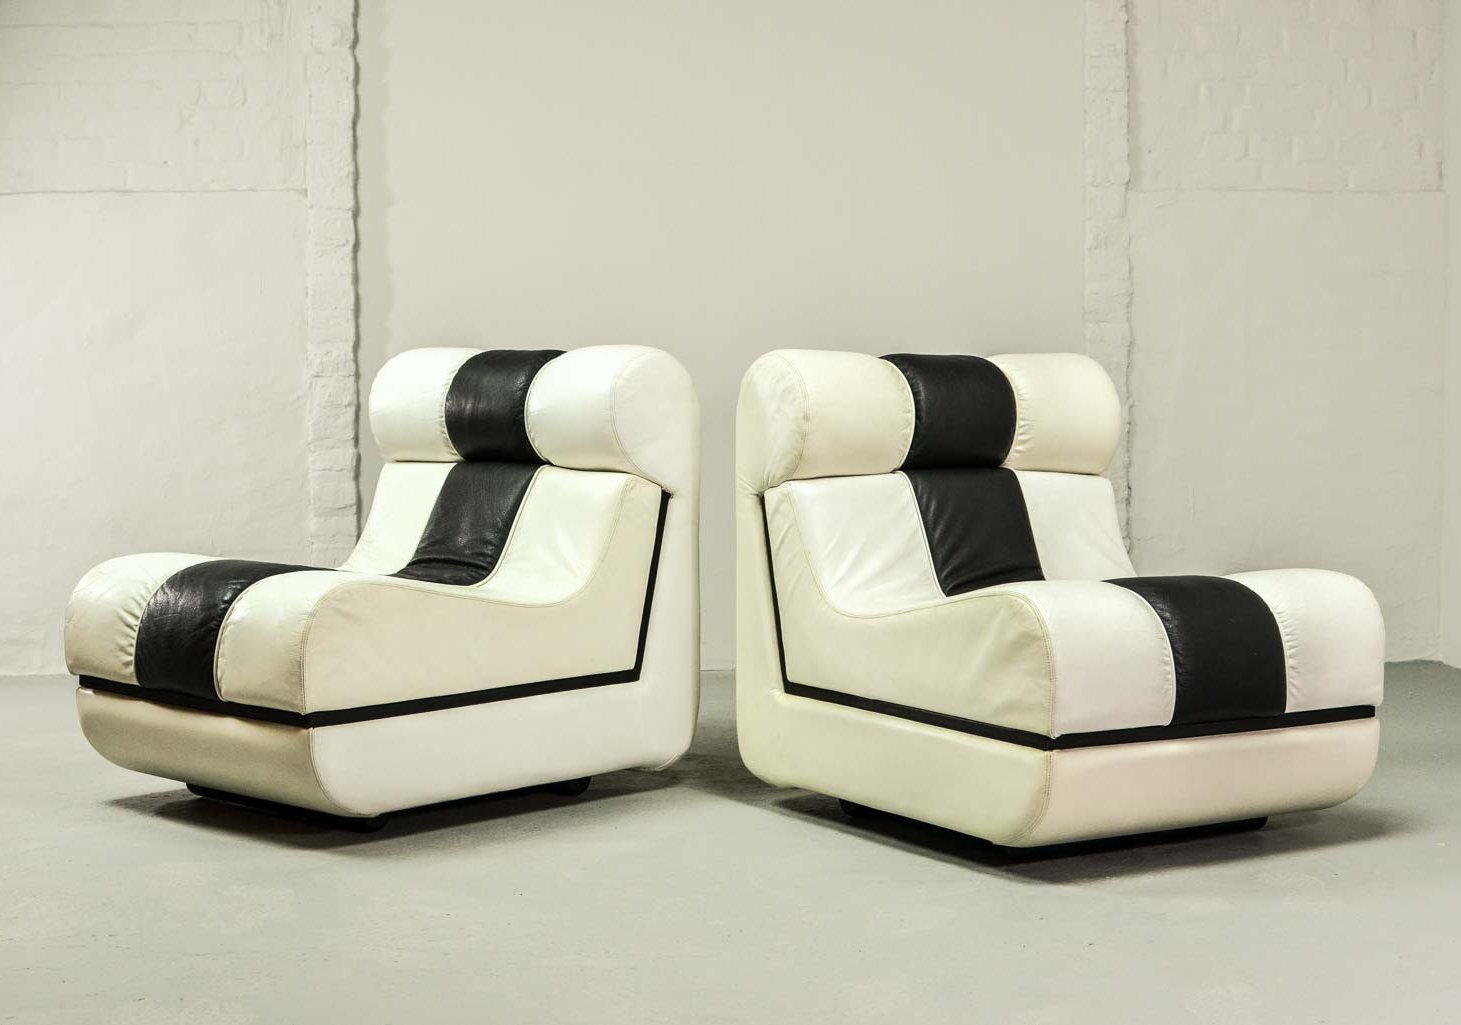 Terrific Mid Century Italian Design Black White Leather Lounge Chairs 1980S Pabps2019 Chair Design Images Pabps2019Com